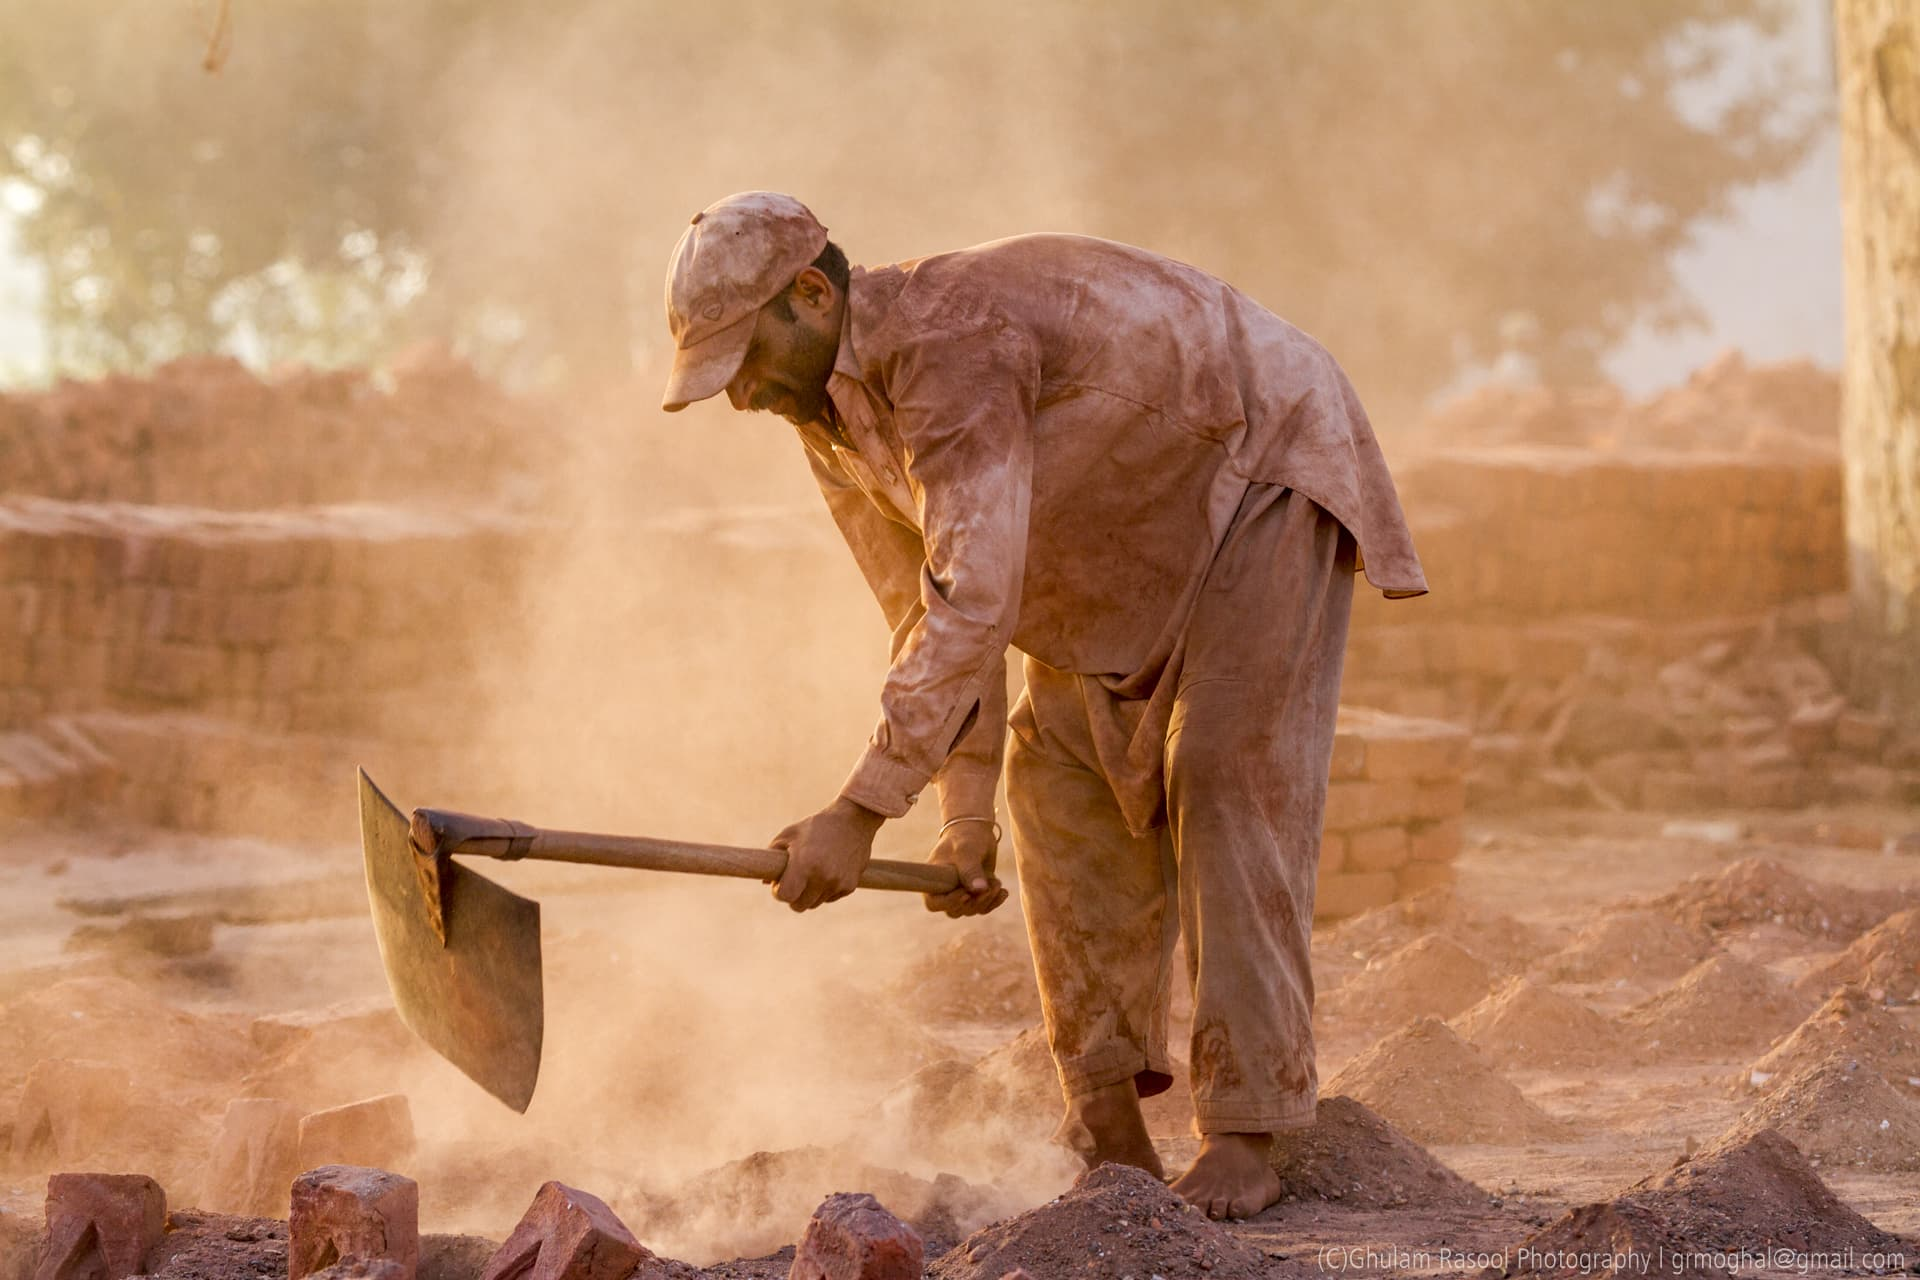 Nearly 2.3 million daily wage labourers work at the brick kilns (Image by: Ghulam Rasool)